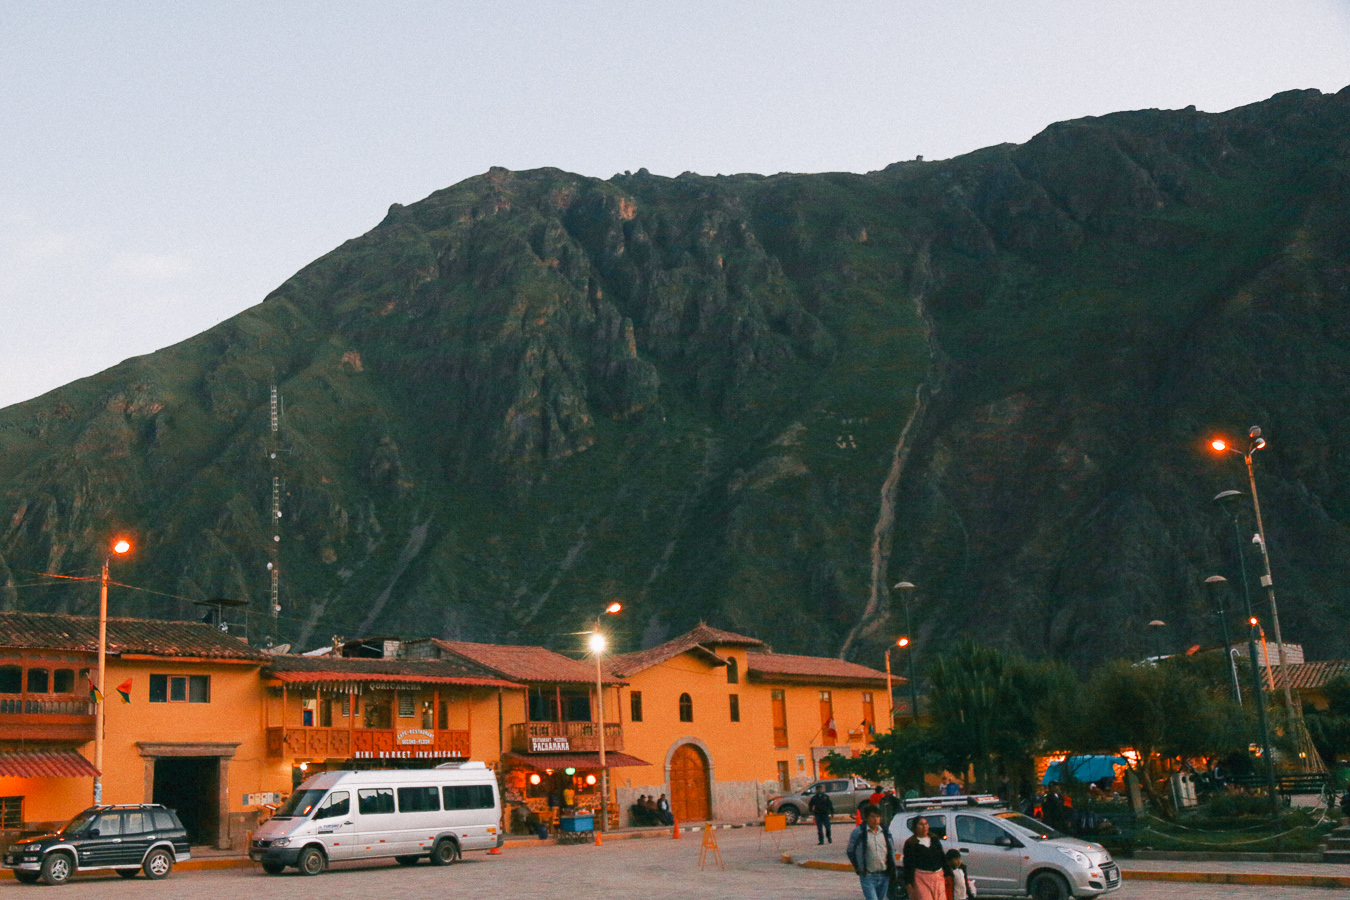 Le Happy travels to Ollantaytambo in Cusco, Peru